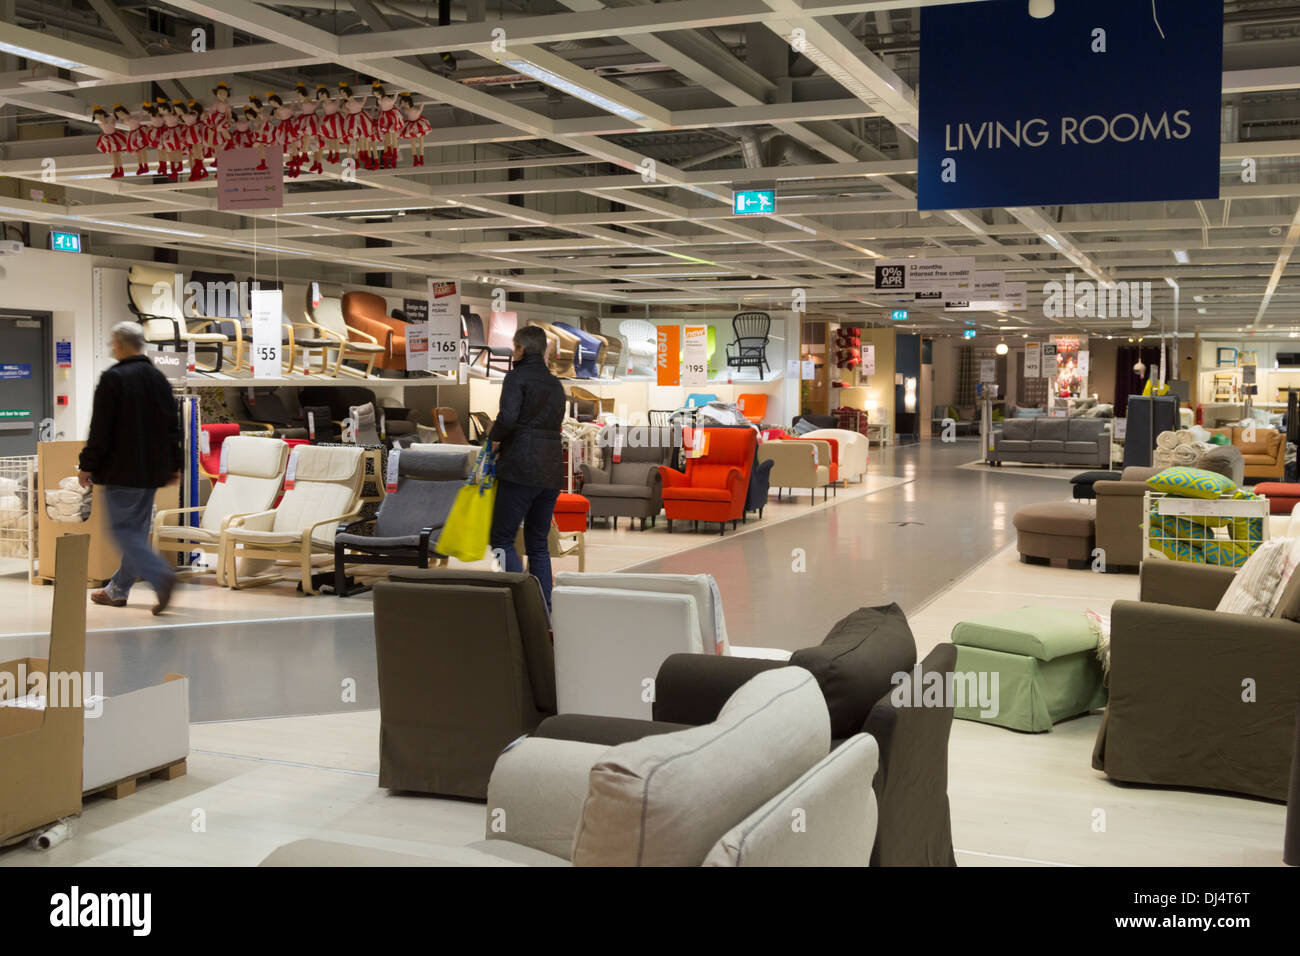 Ikea edmonton london stock photo royalty free image for Ikea shops london